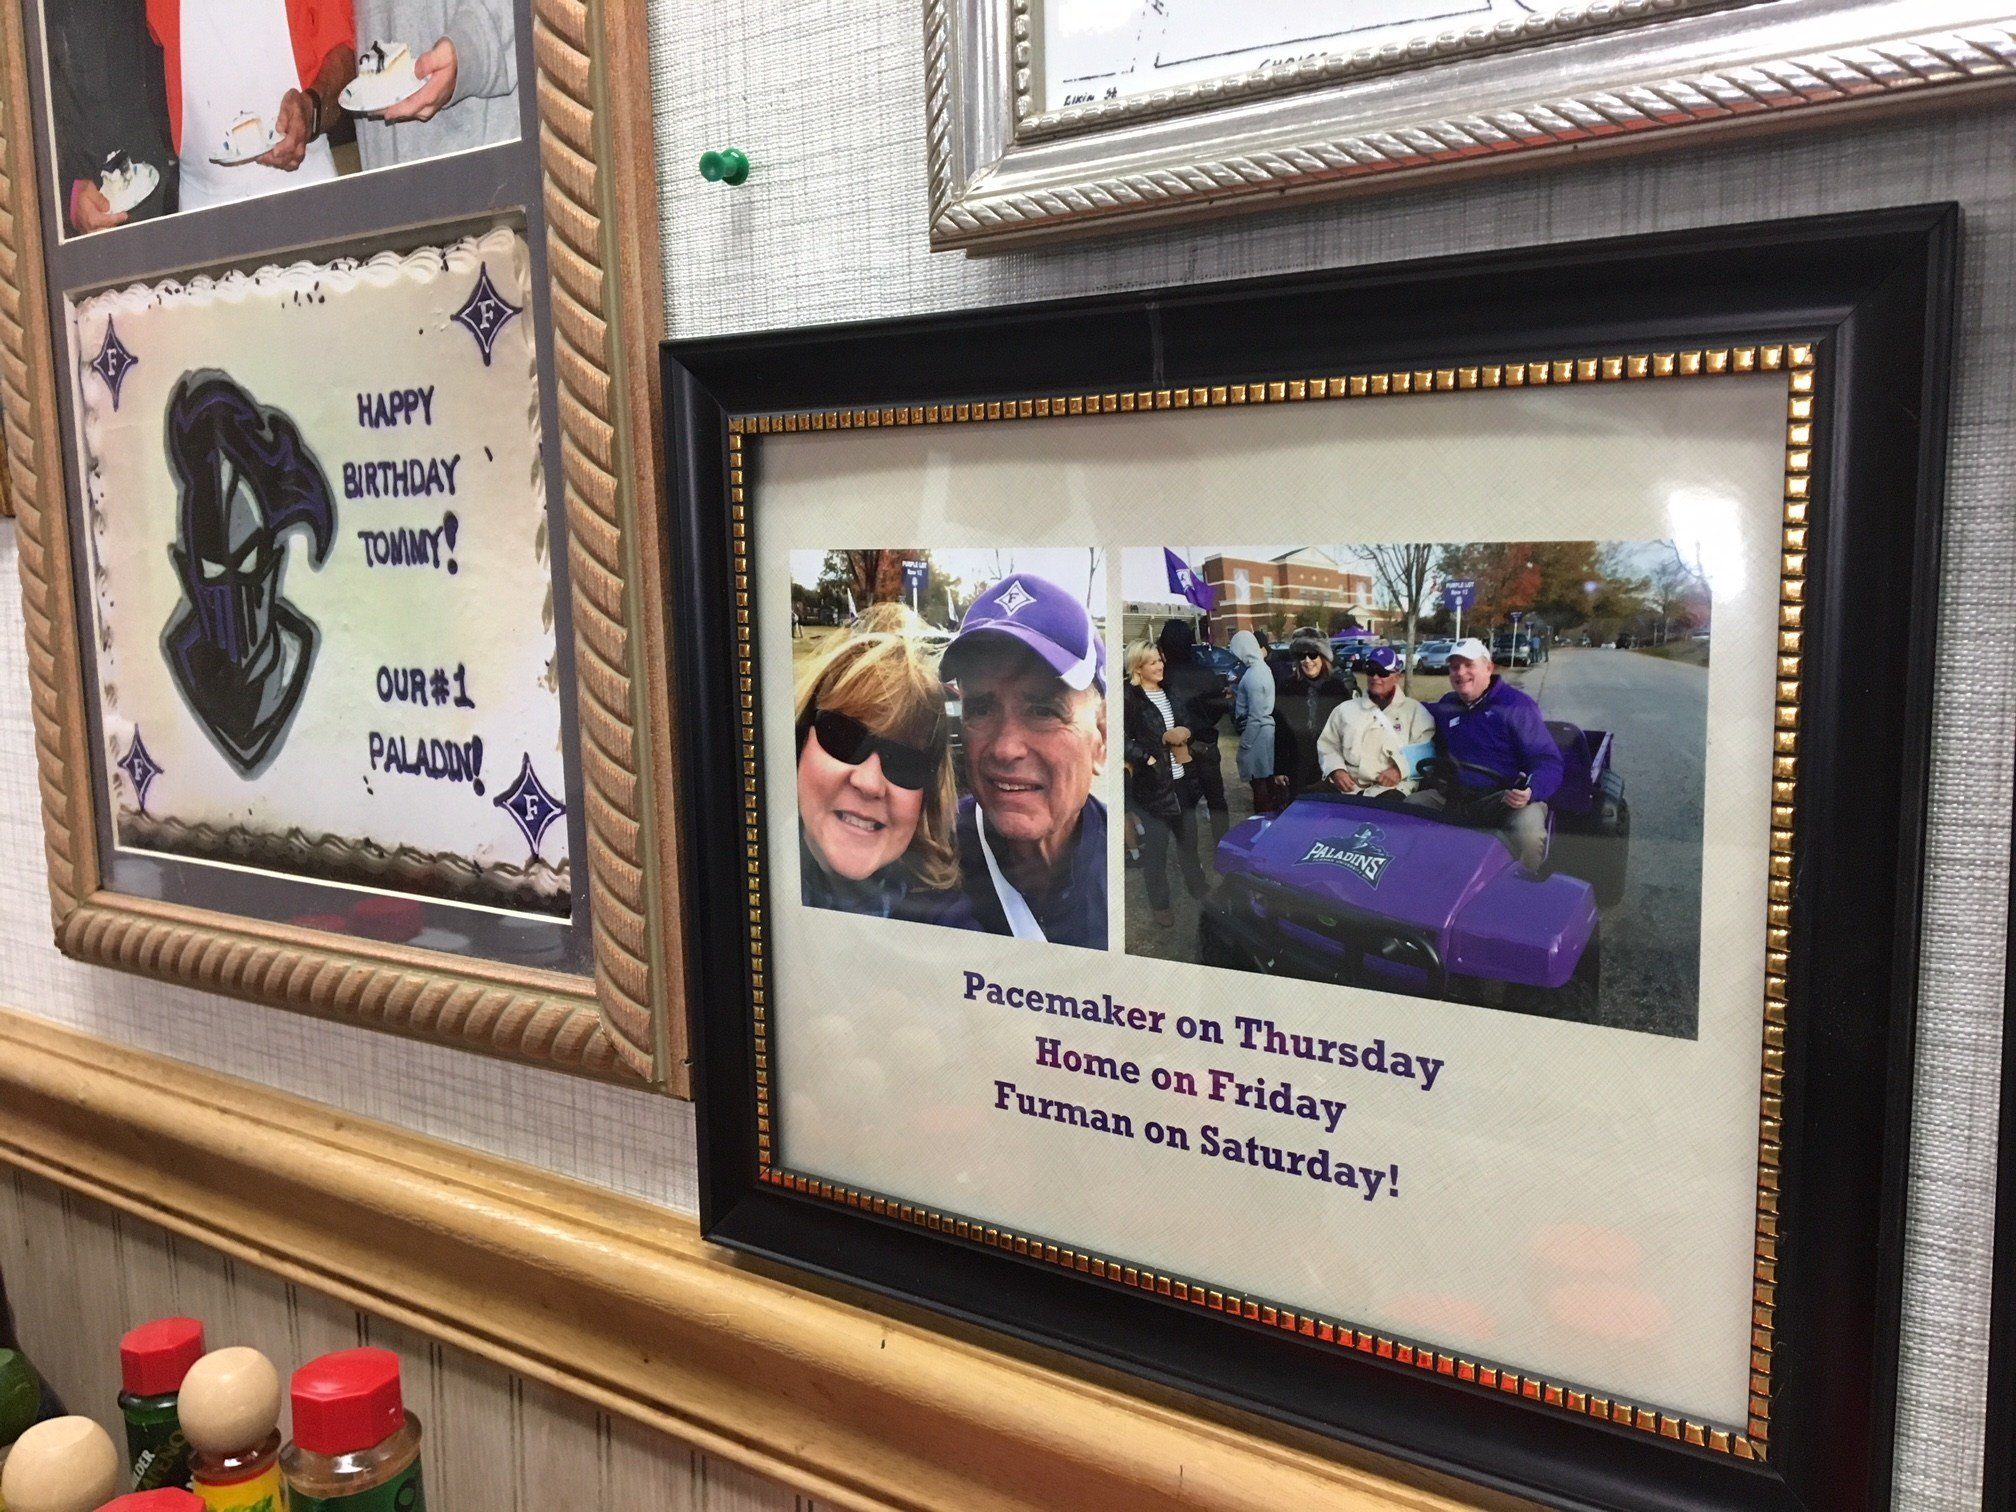 Just two days after getting a pacemaker installed, the owner of Tommy's Country Ham House and Furman graduate, cheered on the Paladins at home (FOX Carolina: 1/18/2018).